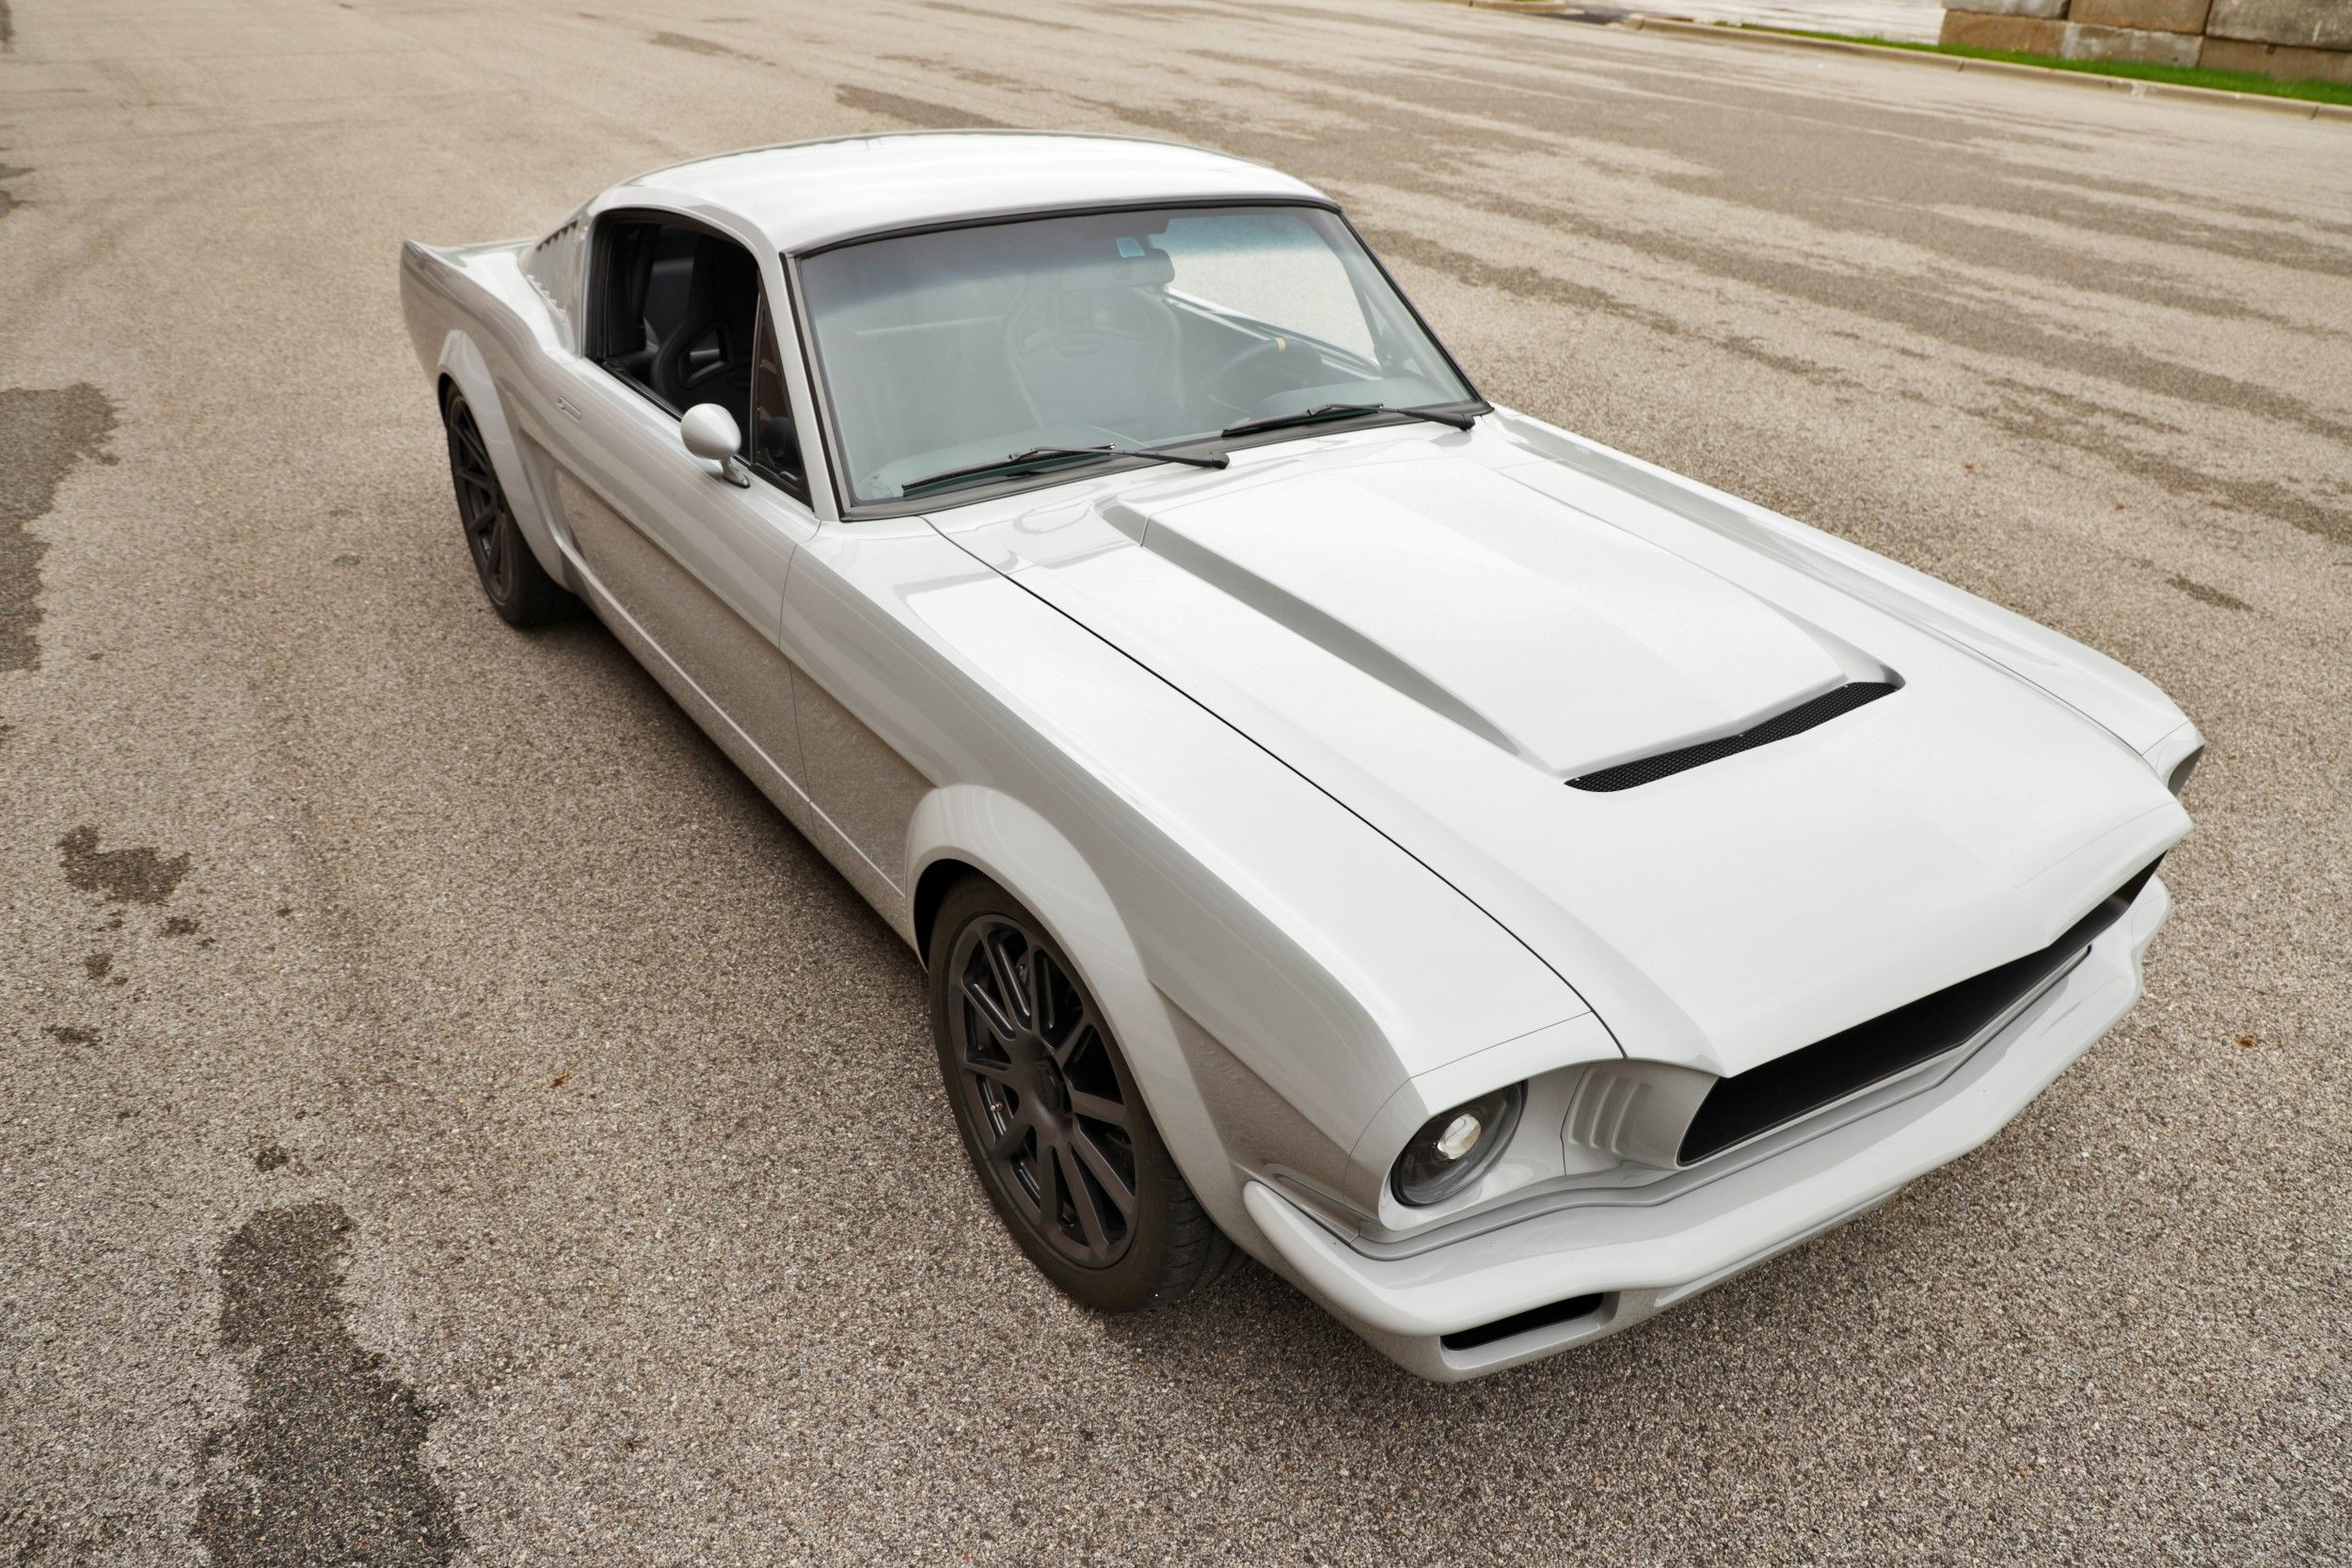 Ford Mustang 'Vapor' is modern klassiek